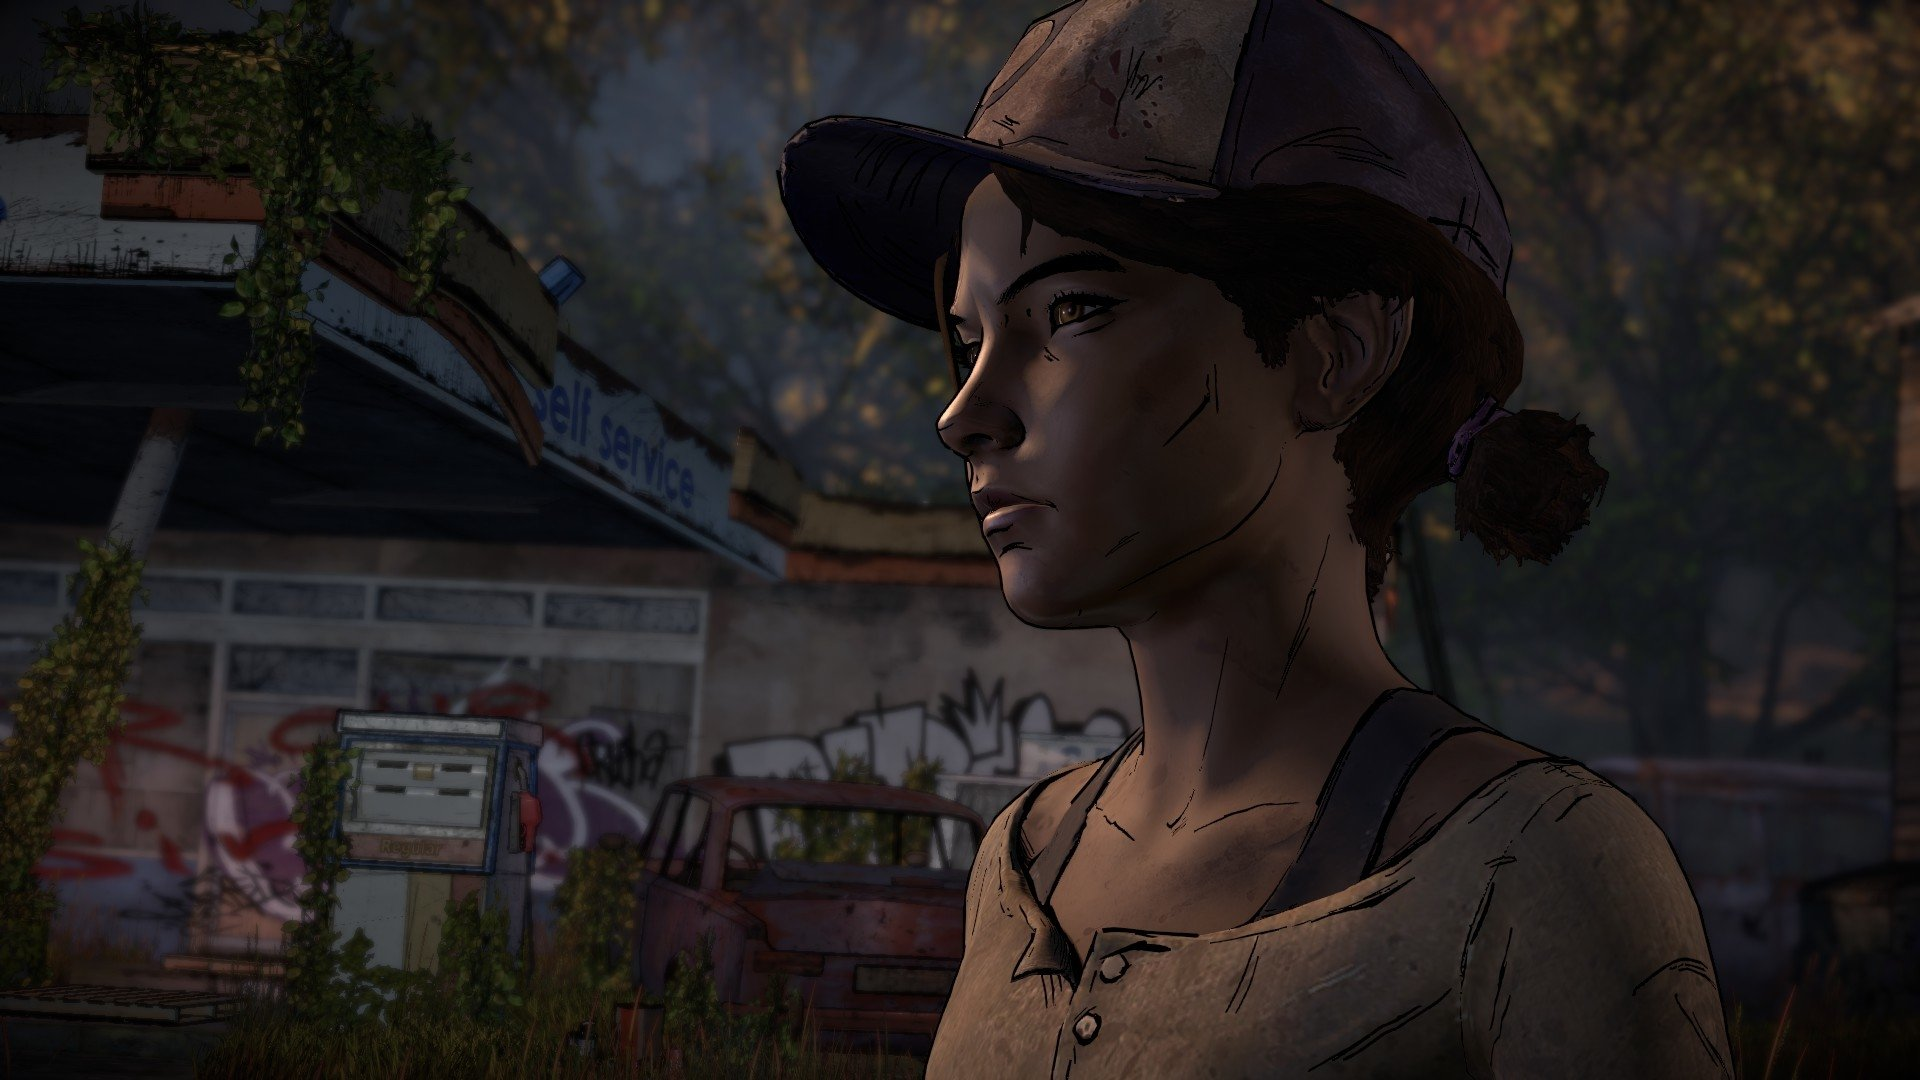 58 Clementine The Walking Dead Hd Wallpapers Background